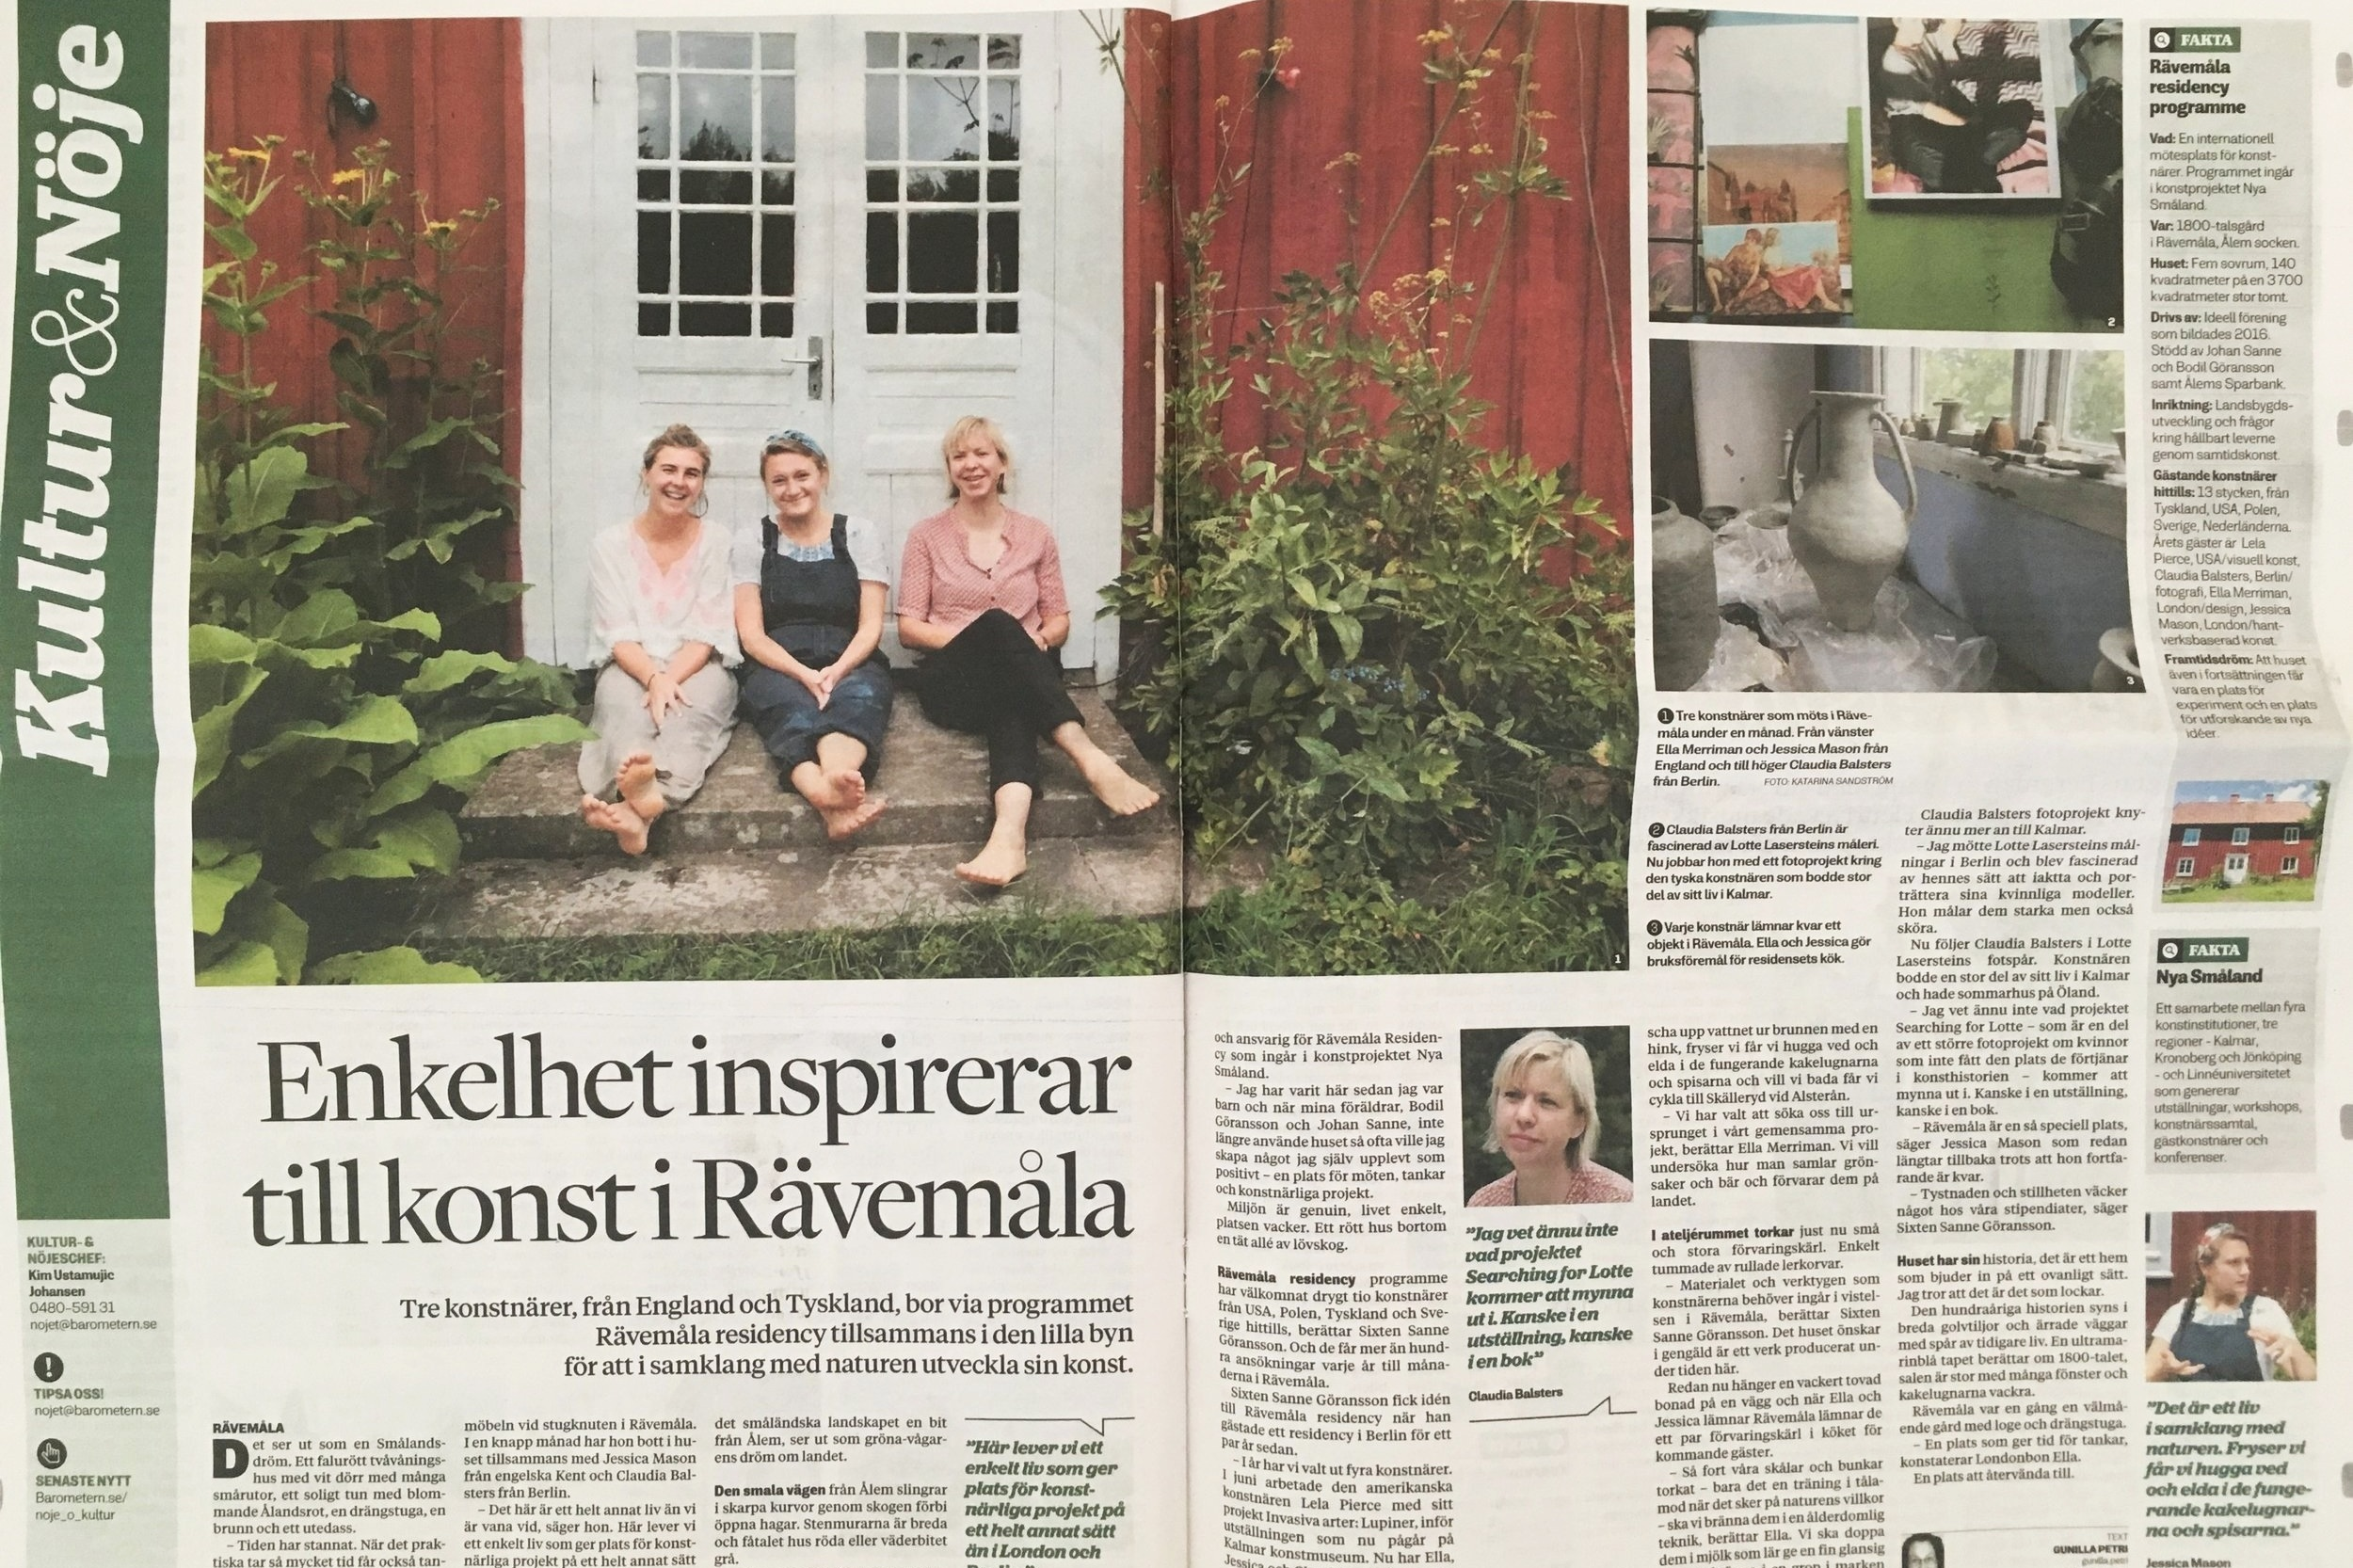 Barometern, Sweden - Artist residency in Rävemåla, Sweden collaborating with the artist Jessica Mason